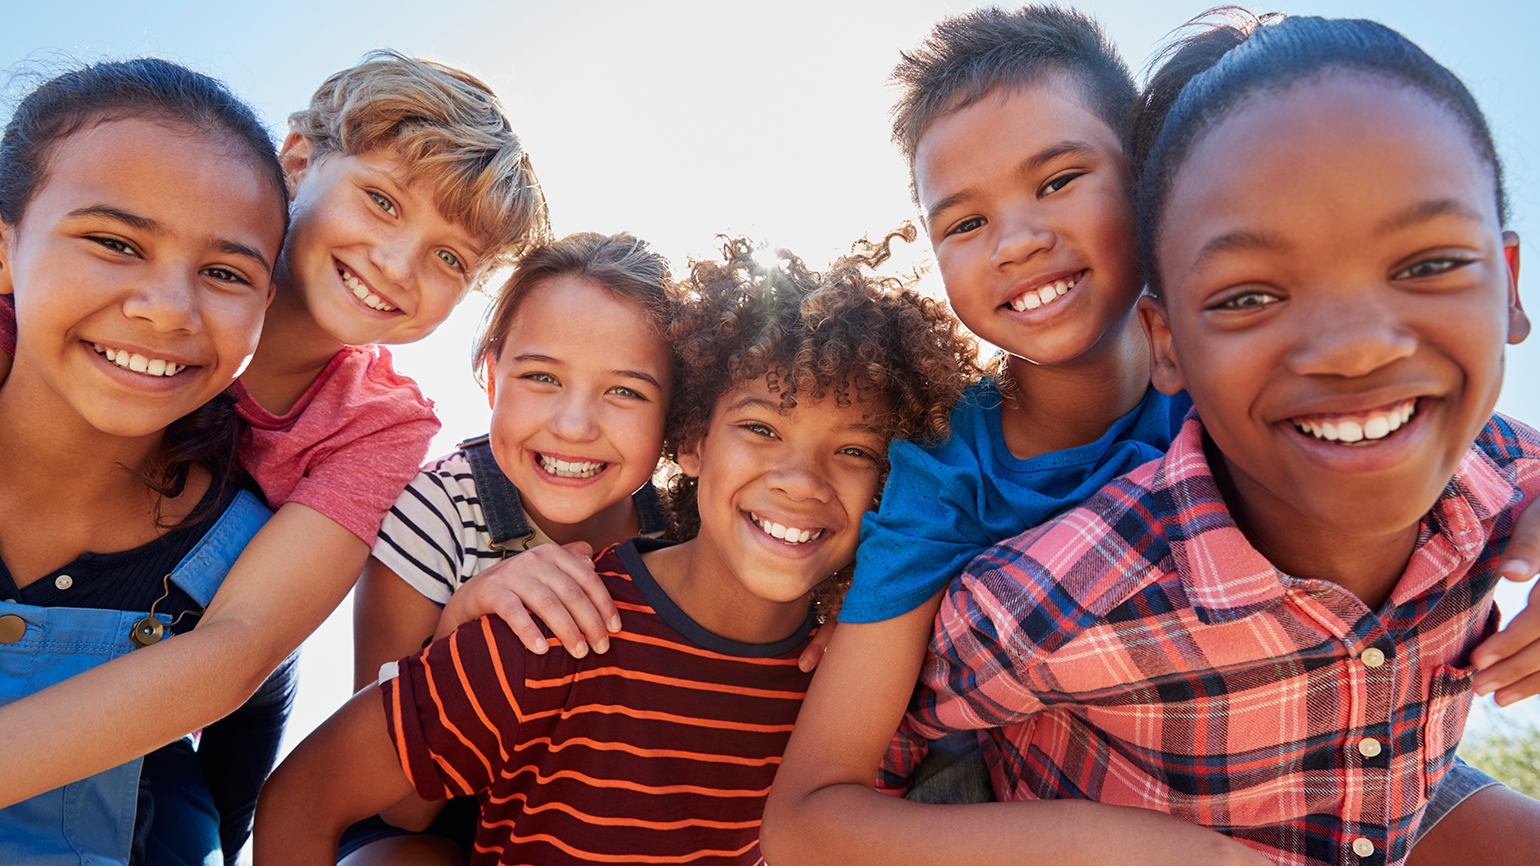 a close-knit group of smiling children